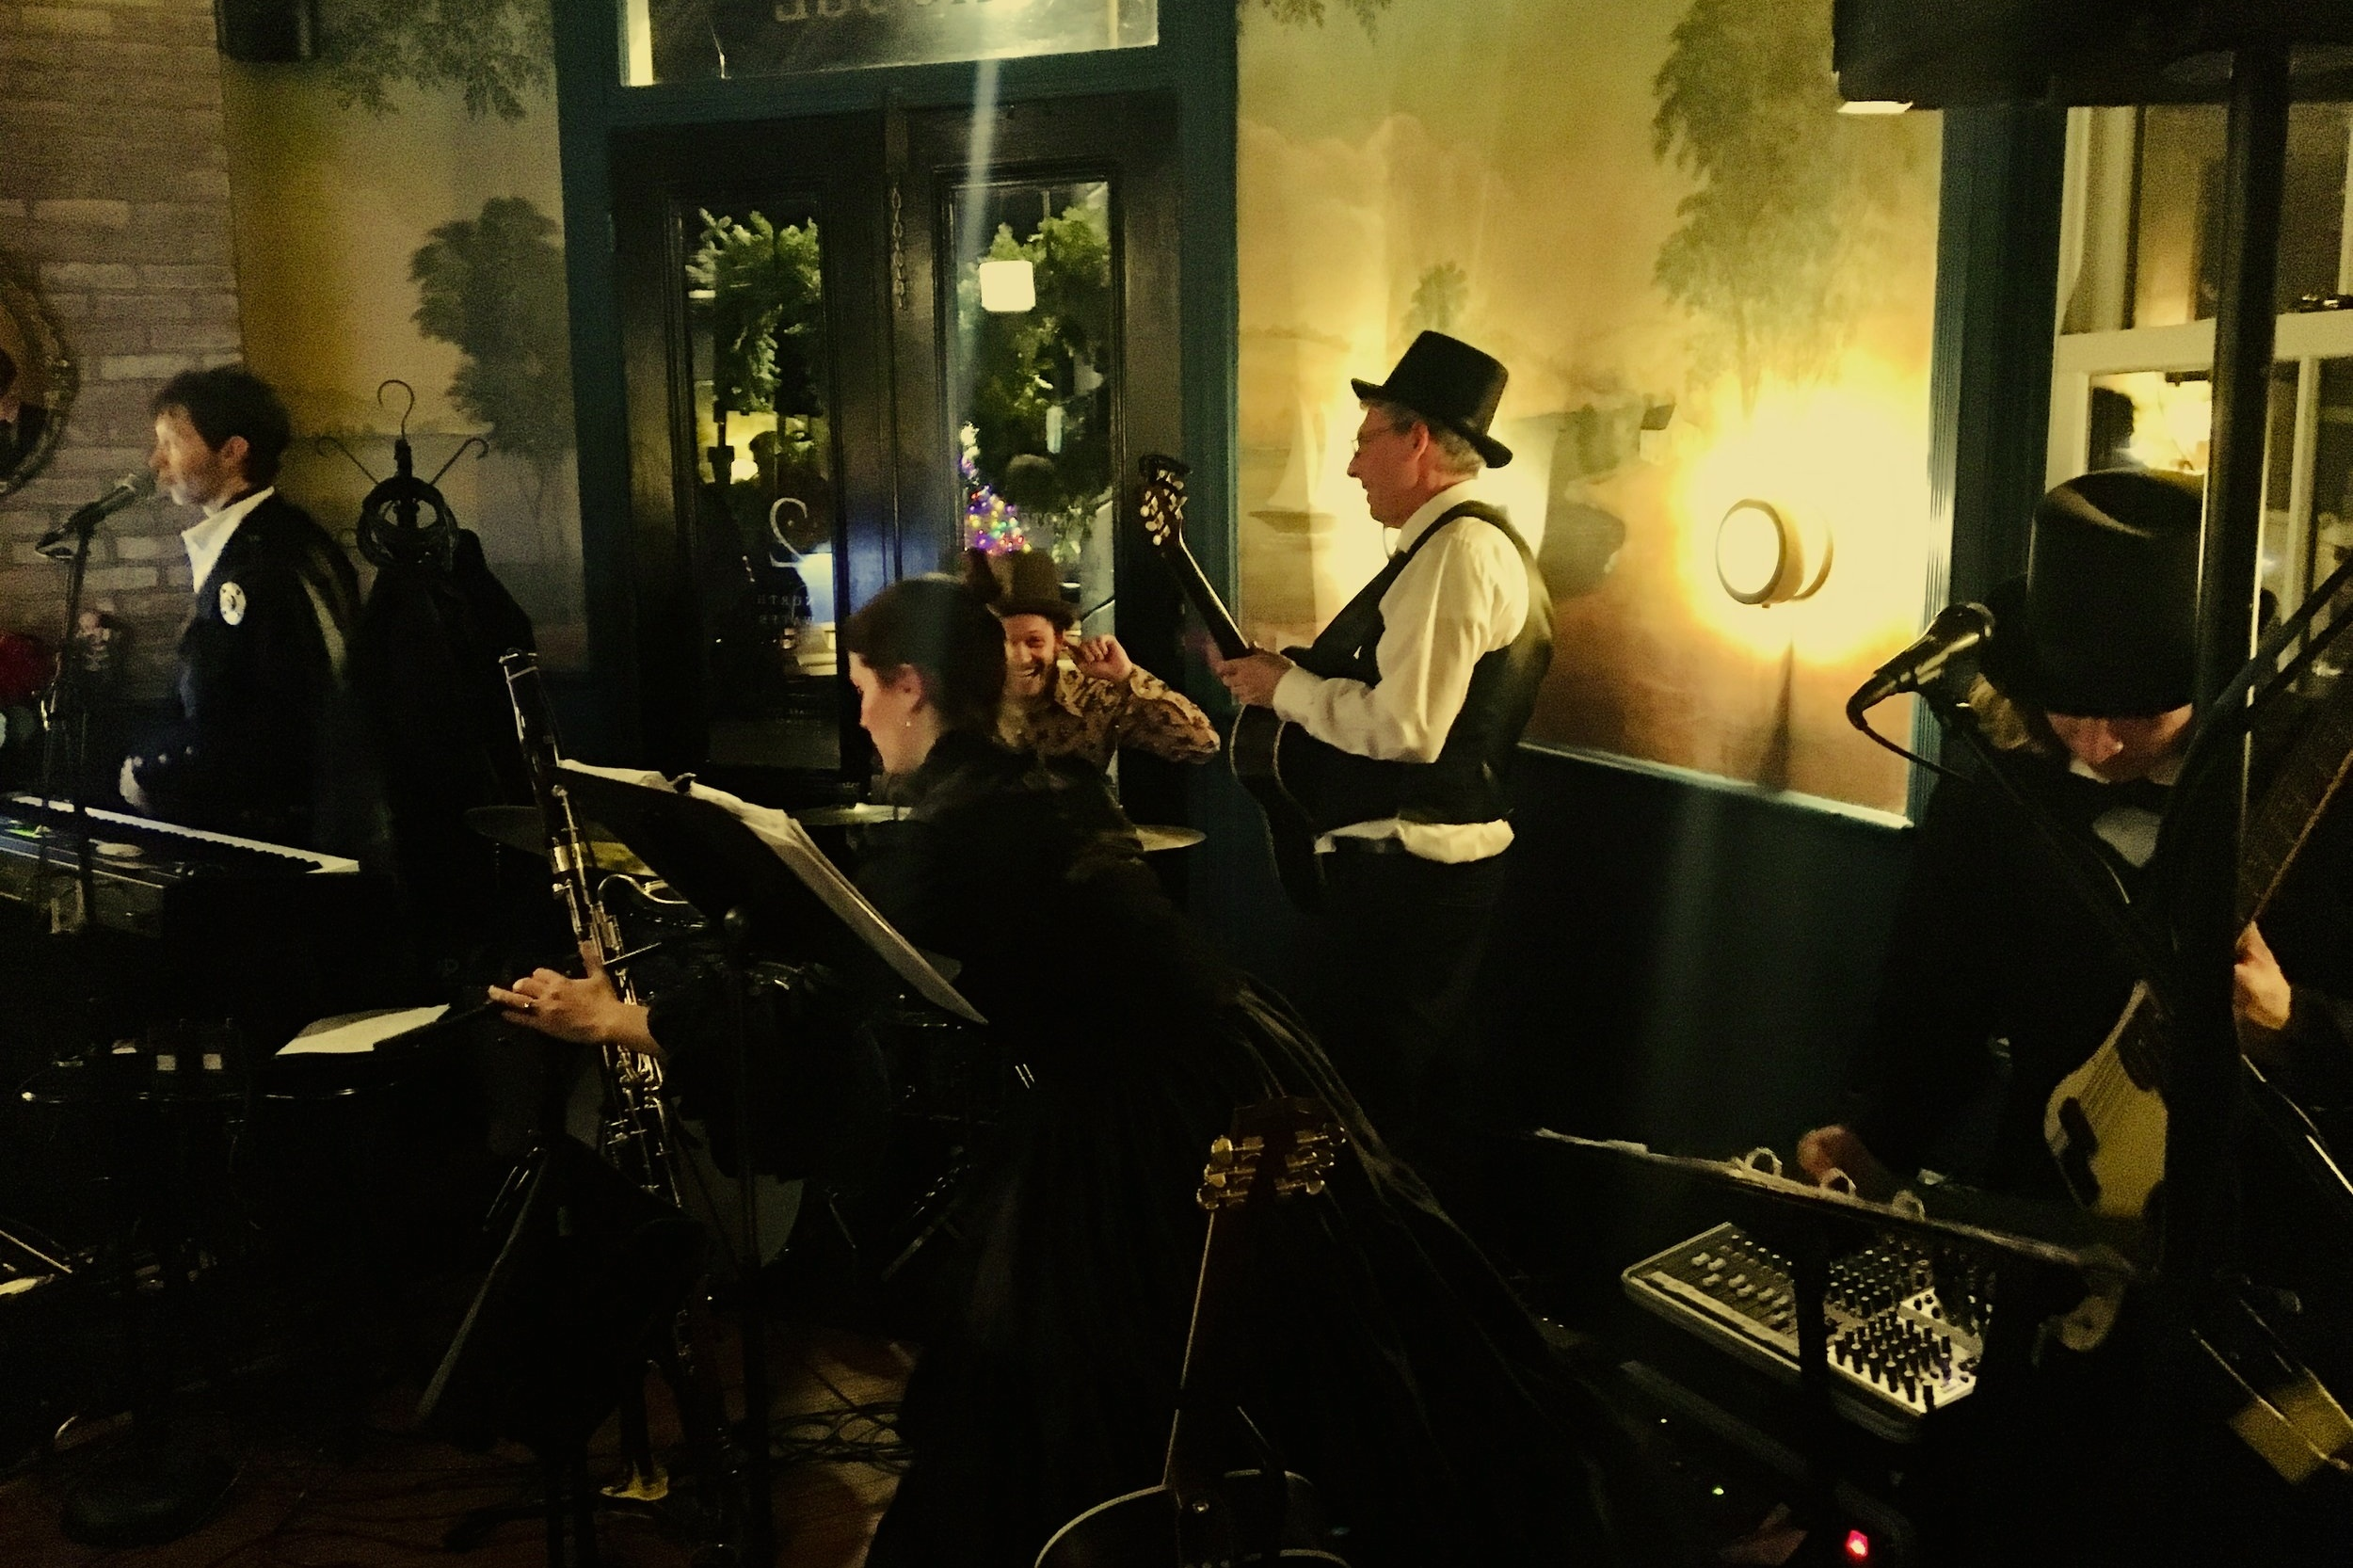 Events - Check out our weekly Thursday Night Live music series which includes Open Mic the first Thursday of every month.Book your own special event in either our private dining room or ca 1883 Tavern.